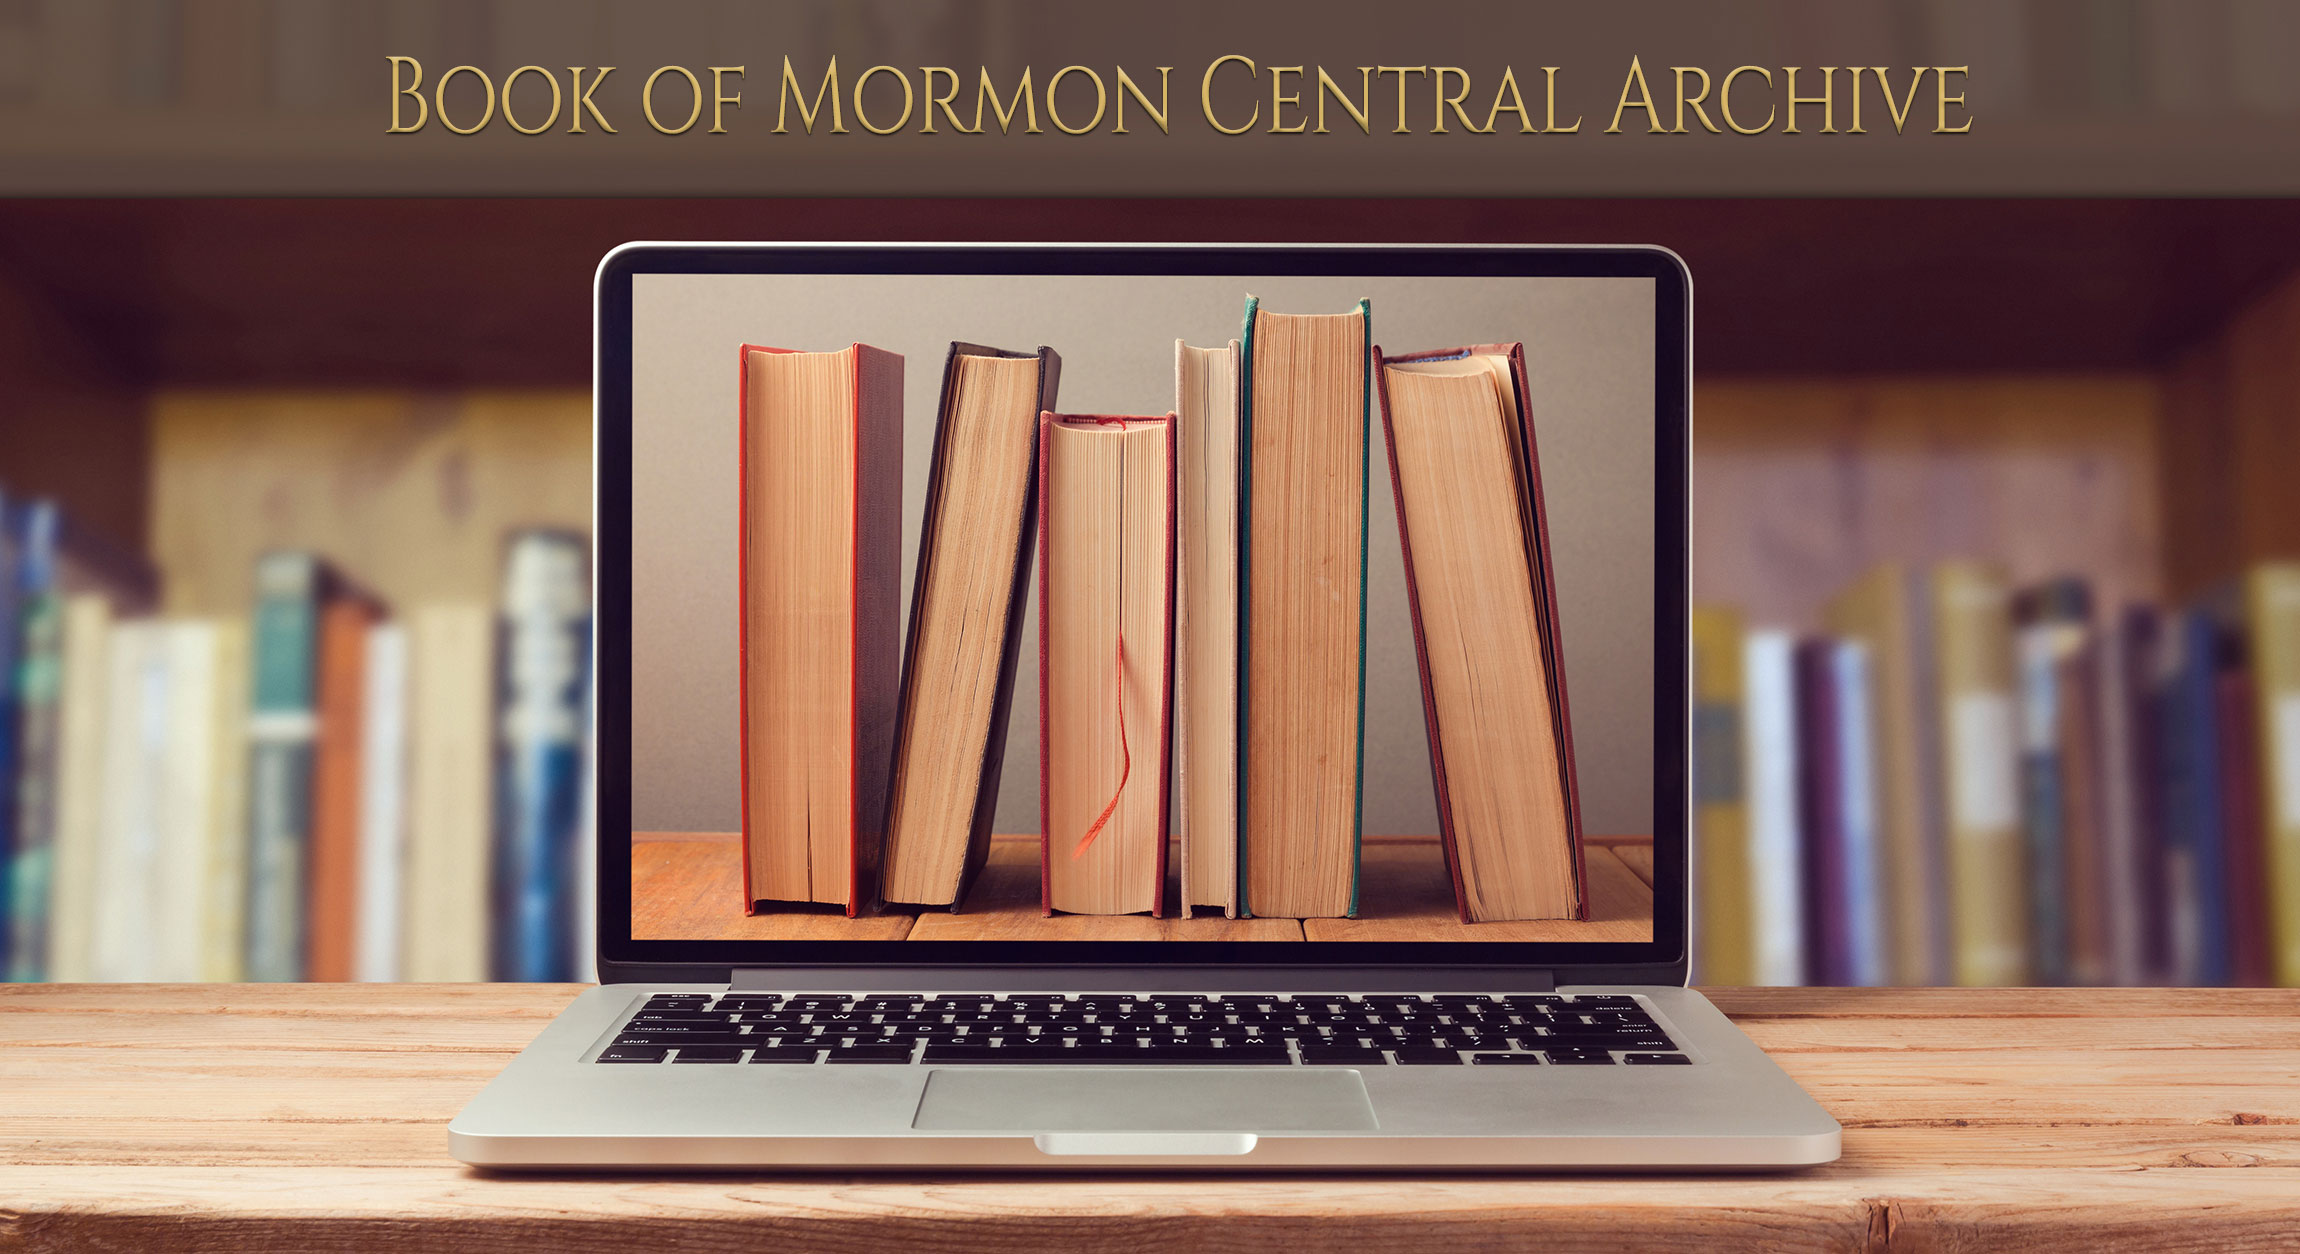 fila shoes encyclopedia of mormonism tithing lds family home